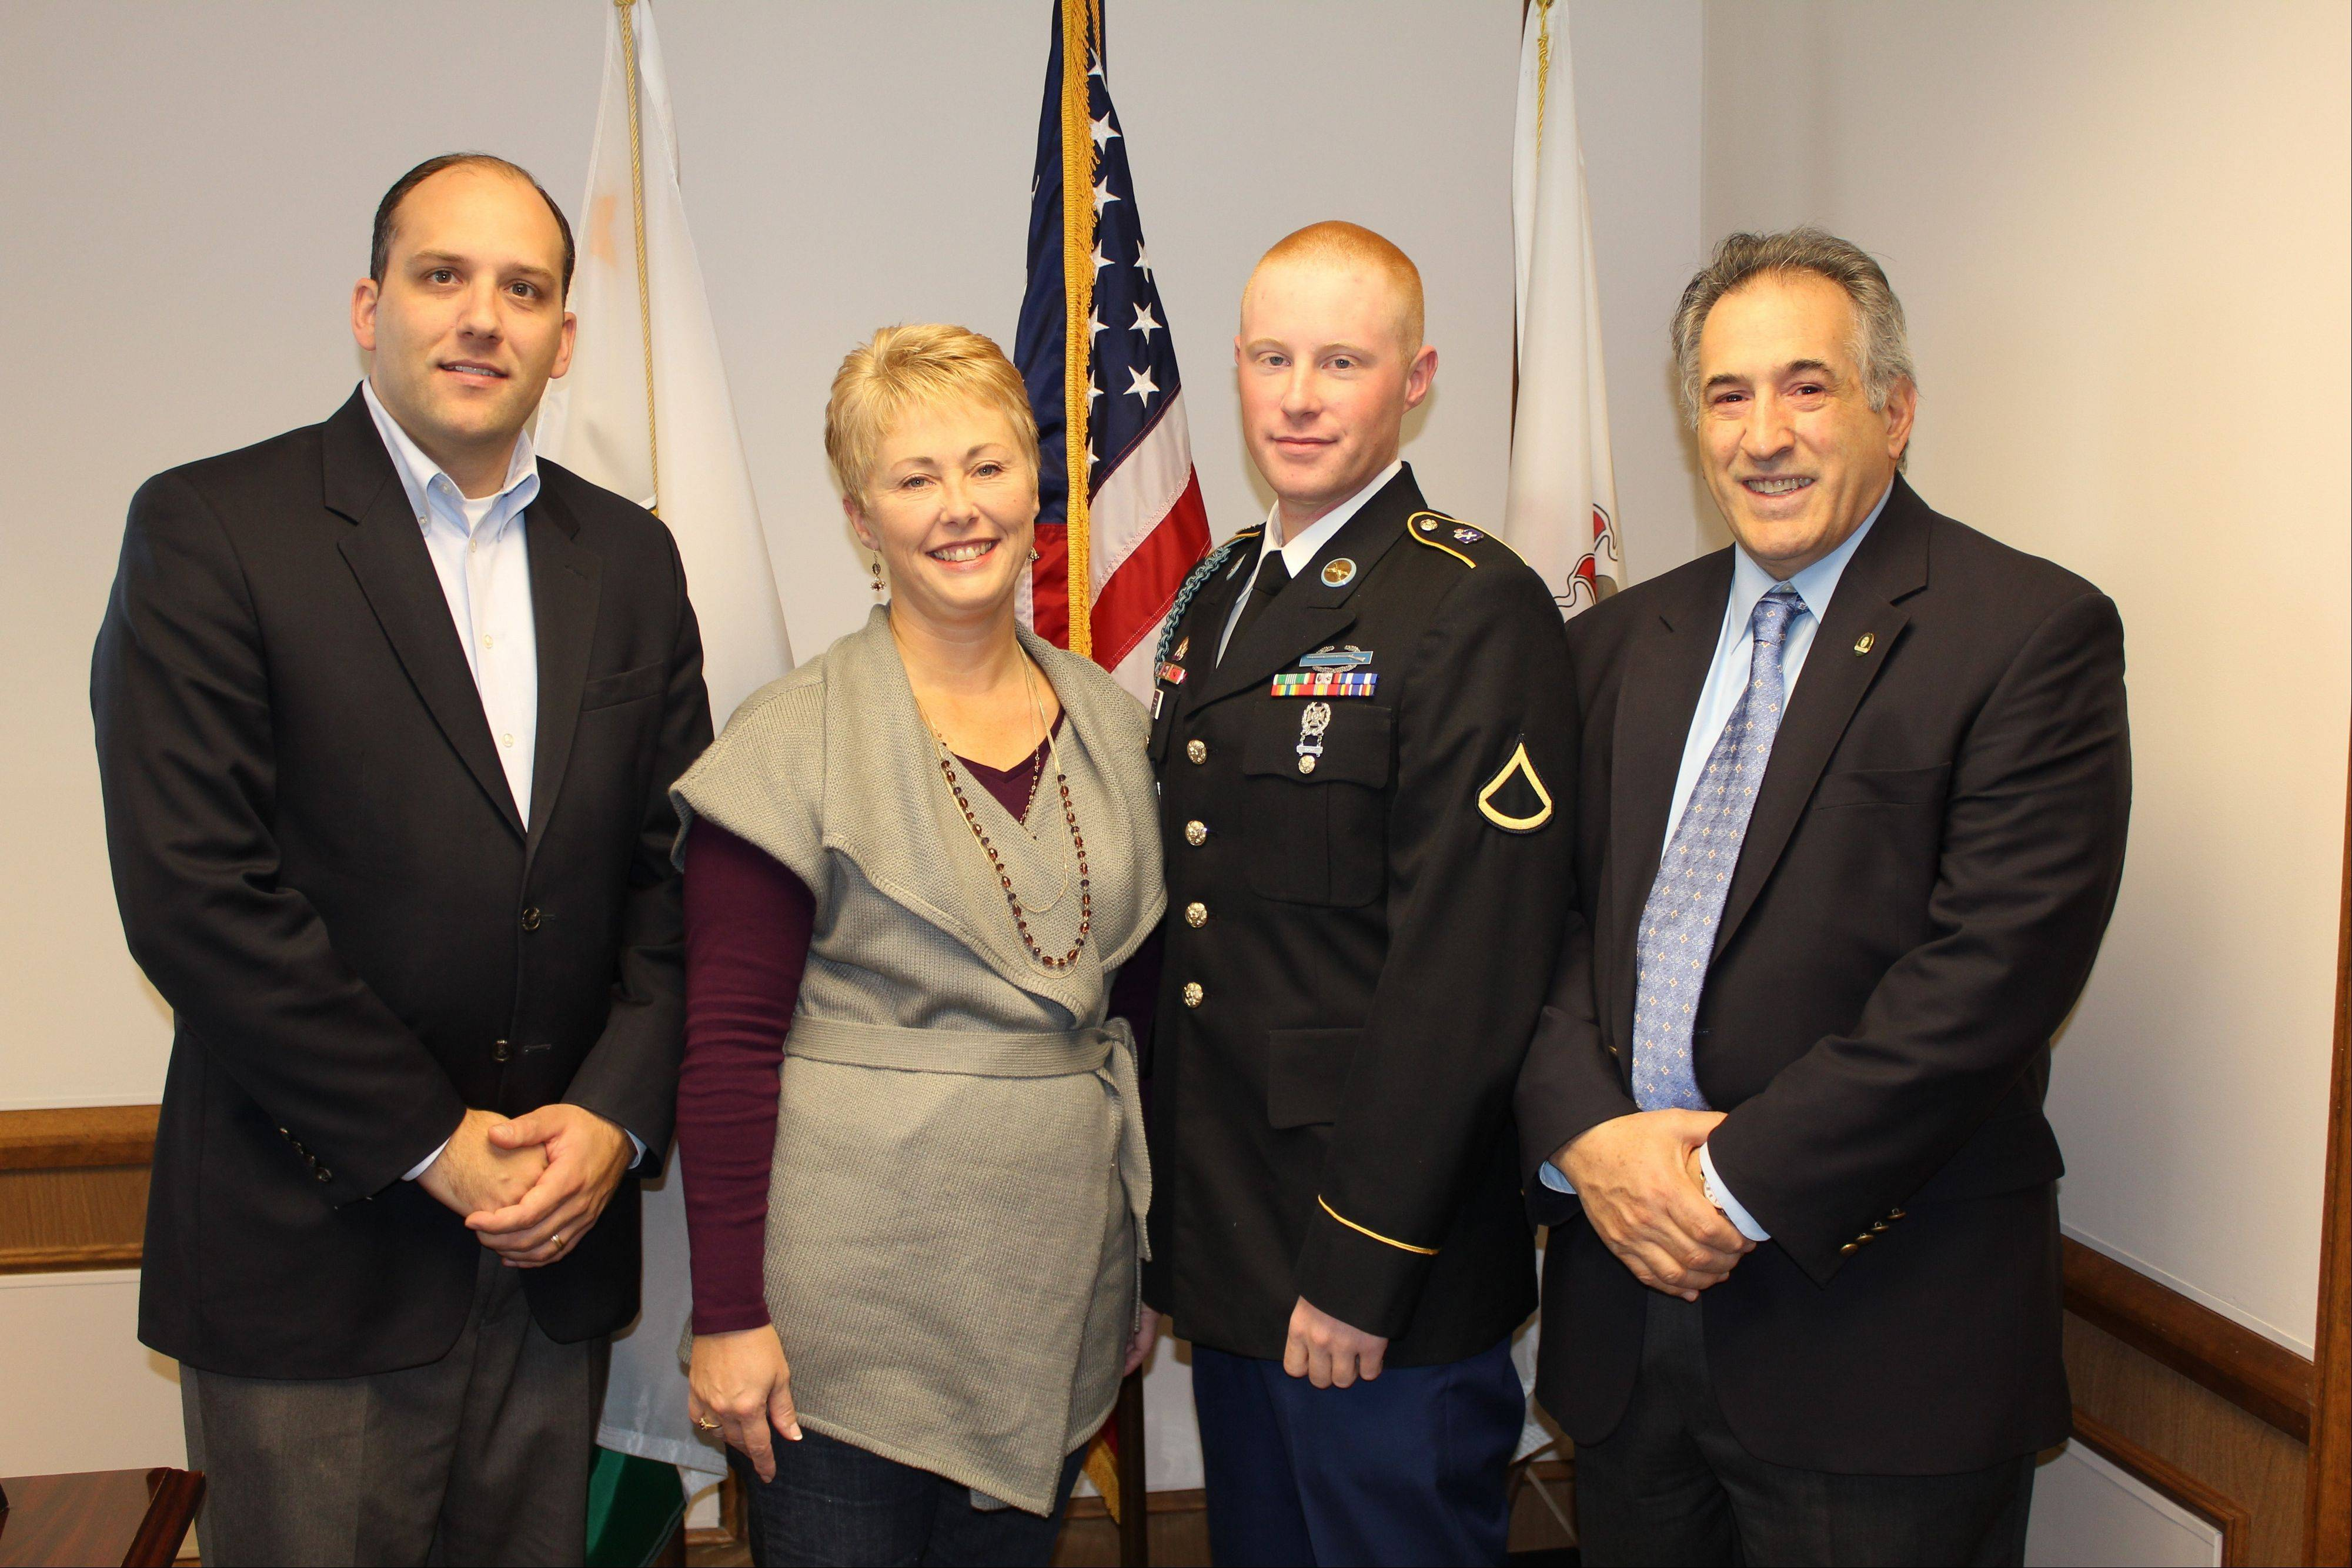 Pictured, from left, acting City Manager Jason Slowinski, Paula Steffan, Private 1st Class Jacob Steffan and Mayor Martin J. Moylan. Private Steffan, who has left for Afghanistan, is expected to return to the United States by March, 2012.